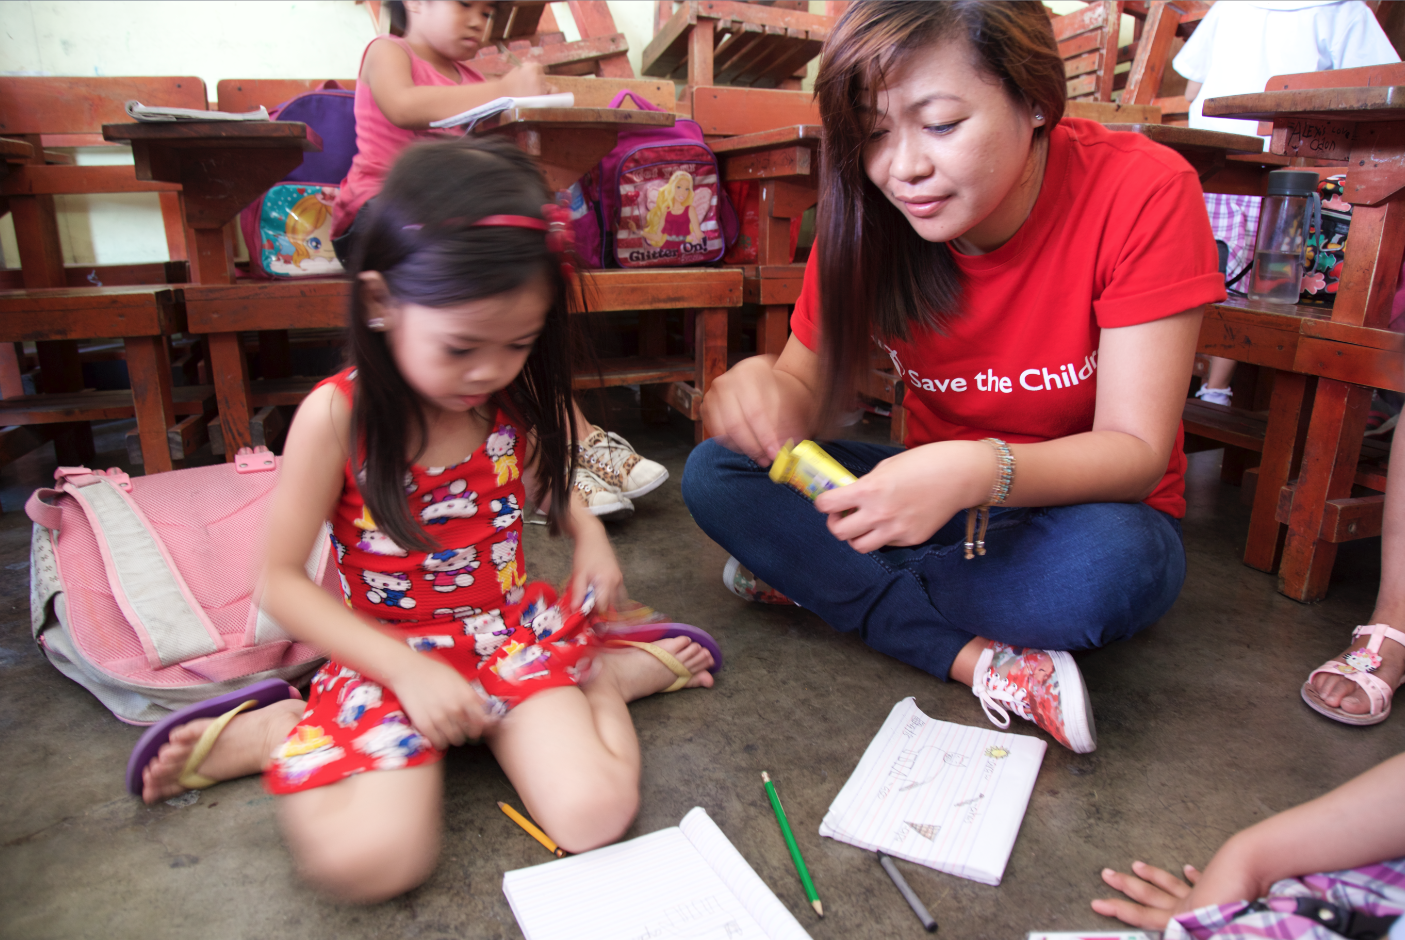 Project photo from Save the Children